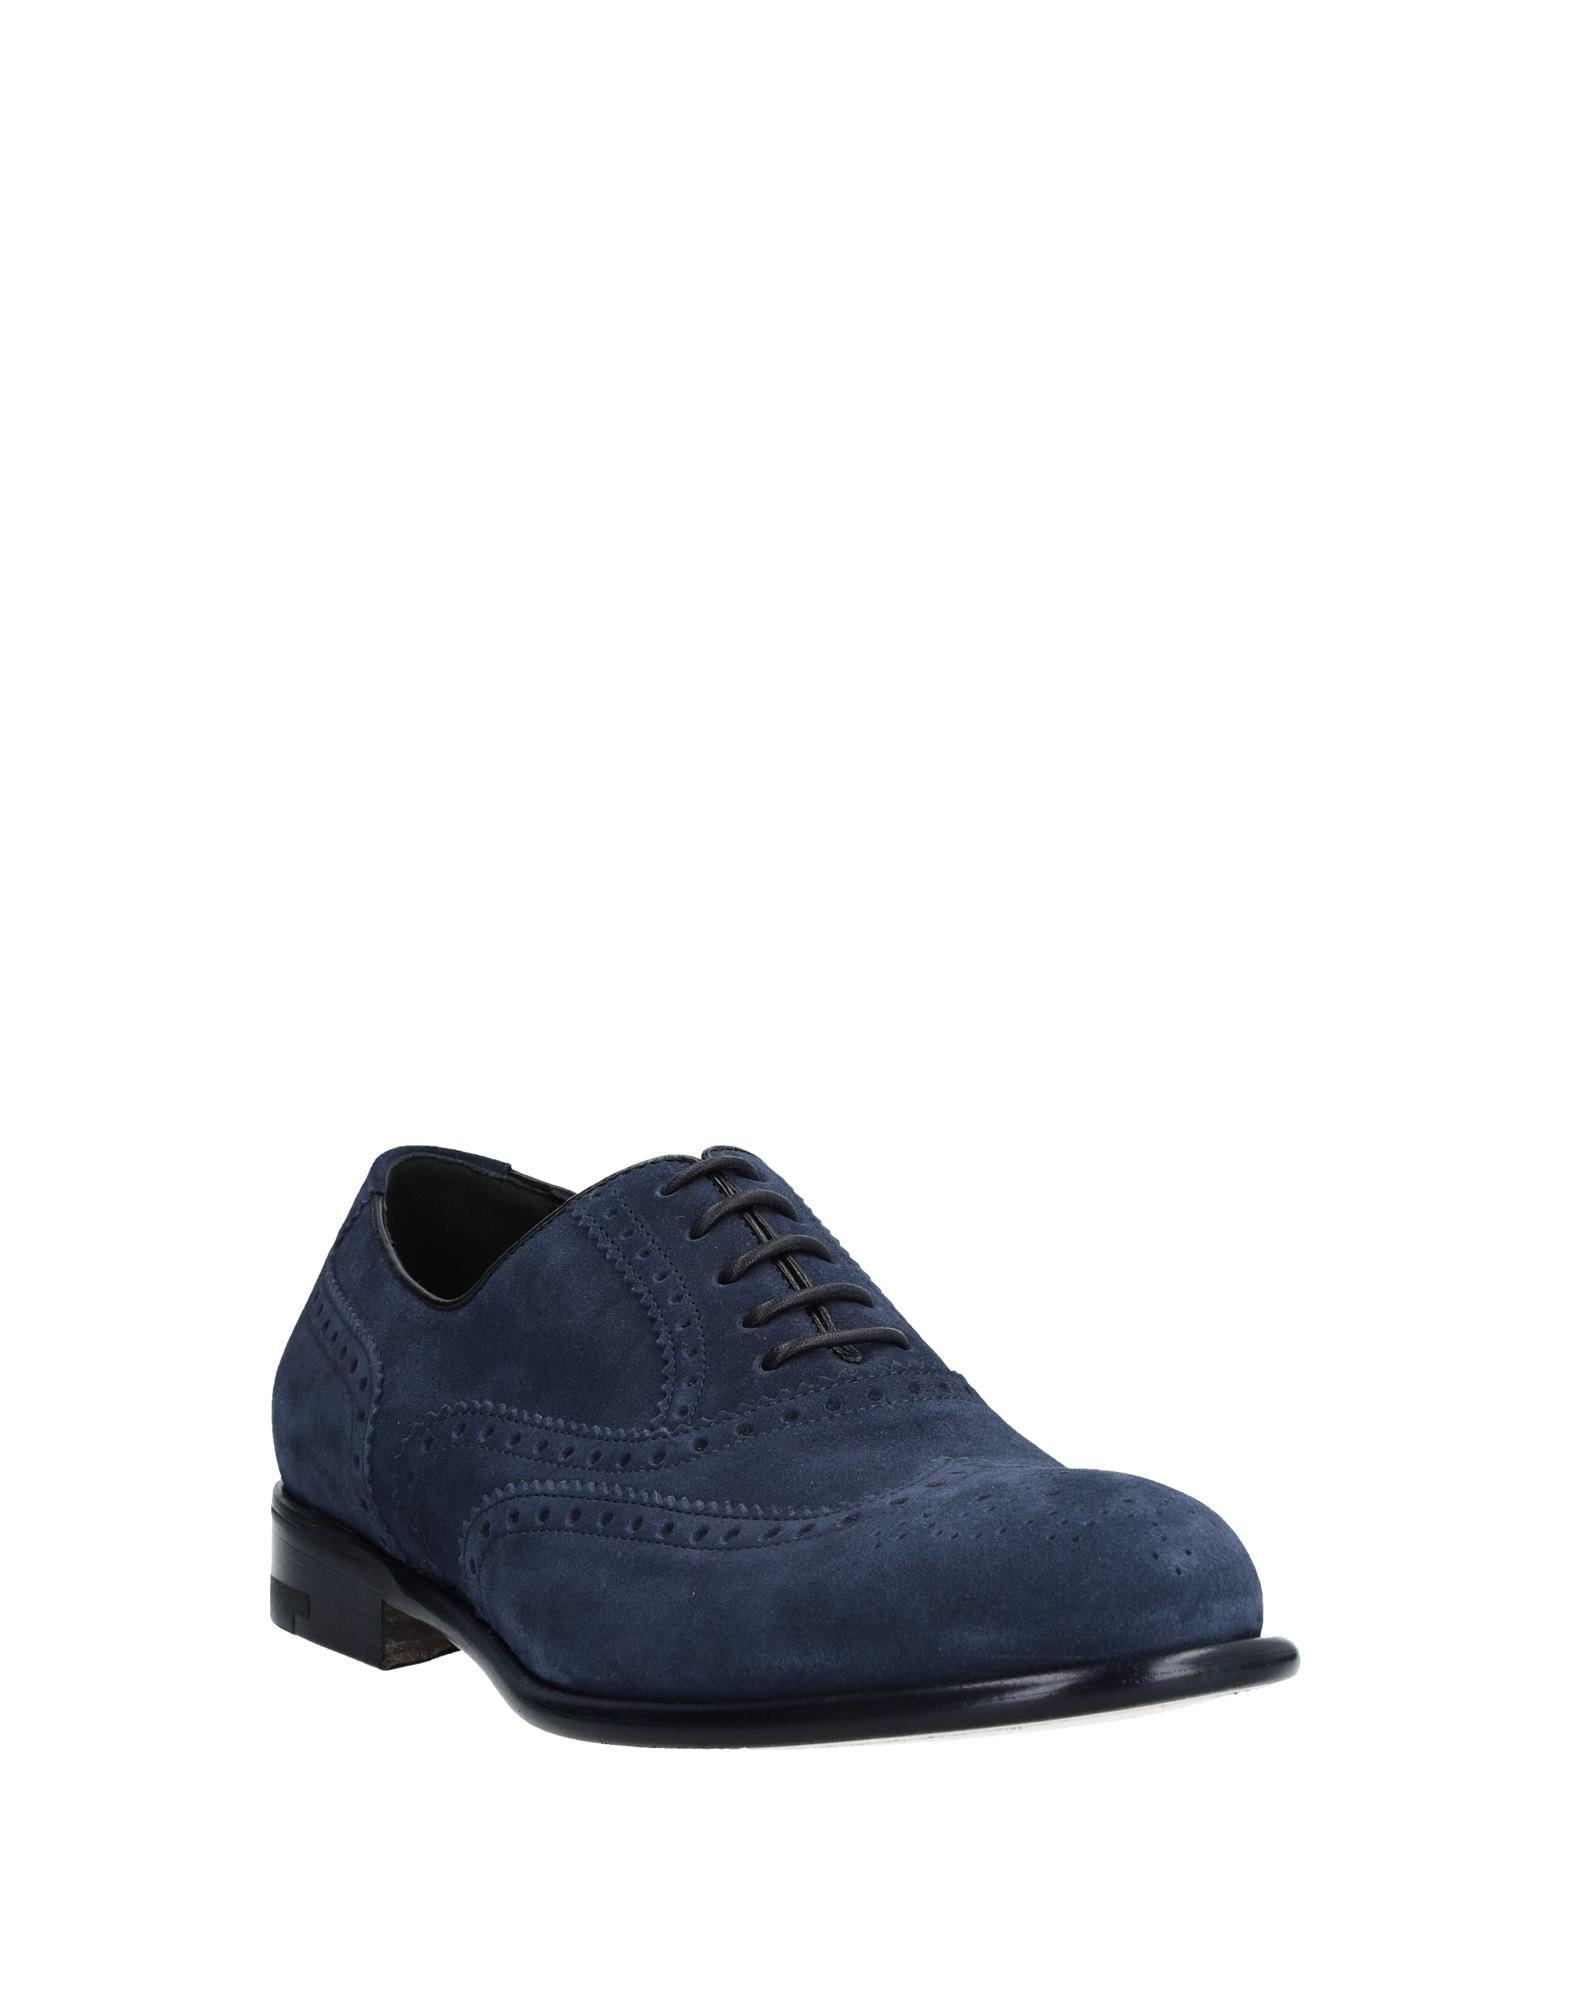 A.Testoni Lace-up Shoe in Blue for Men